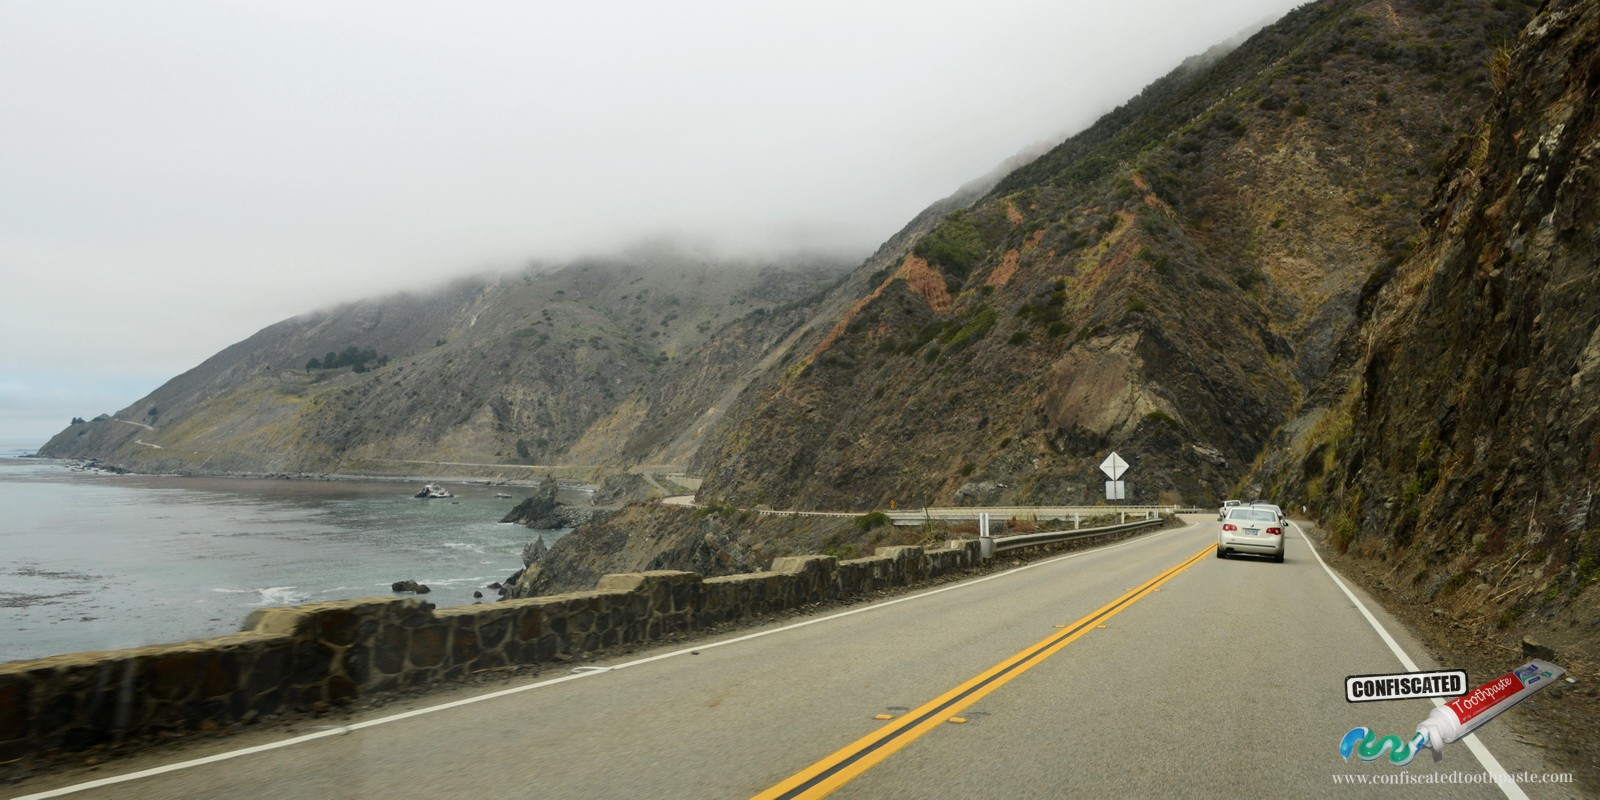 Pacific Coast Highway, CA, USA